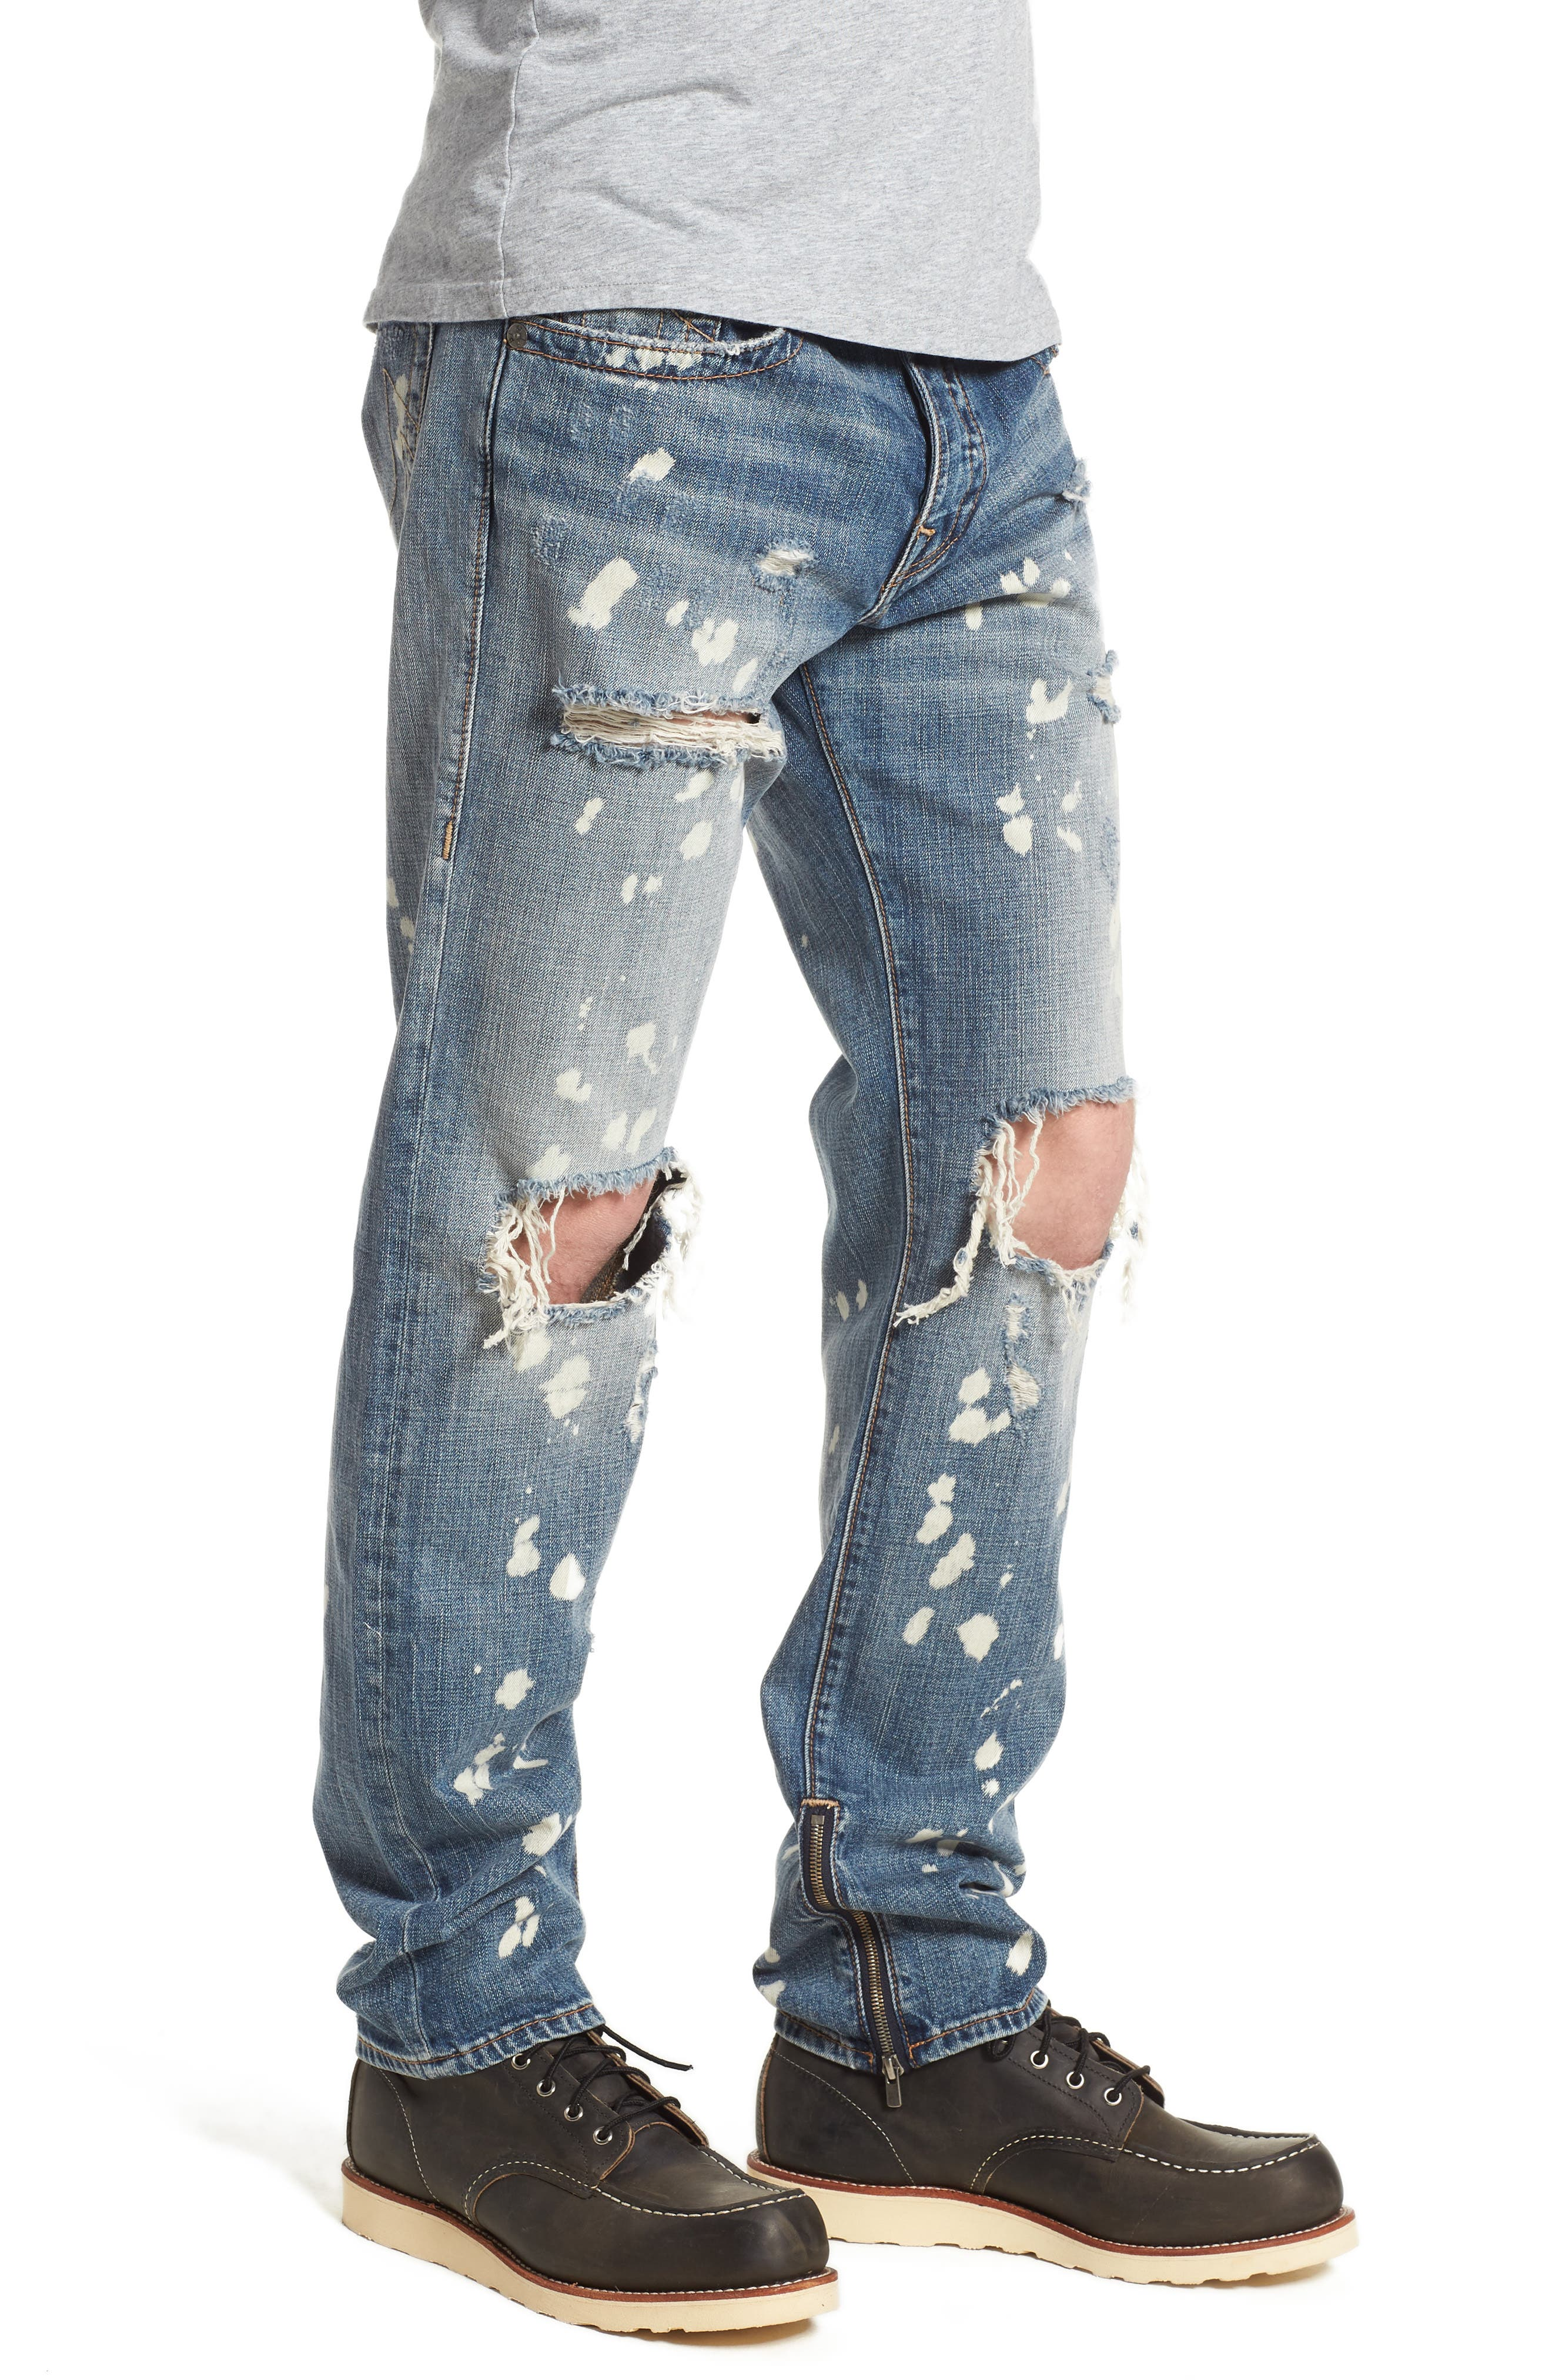 Rocco Skinny Fit Jeans,                             Alternate thumbnail 3, color,                             Cyber Rebel